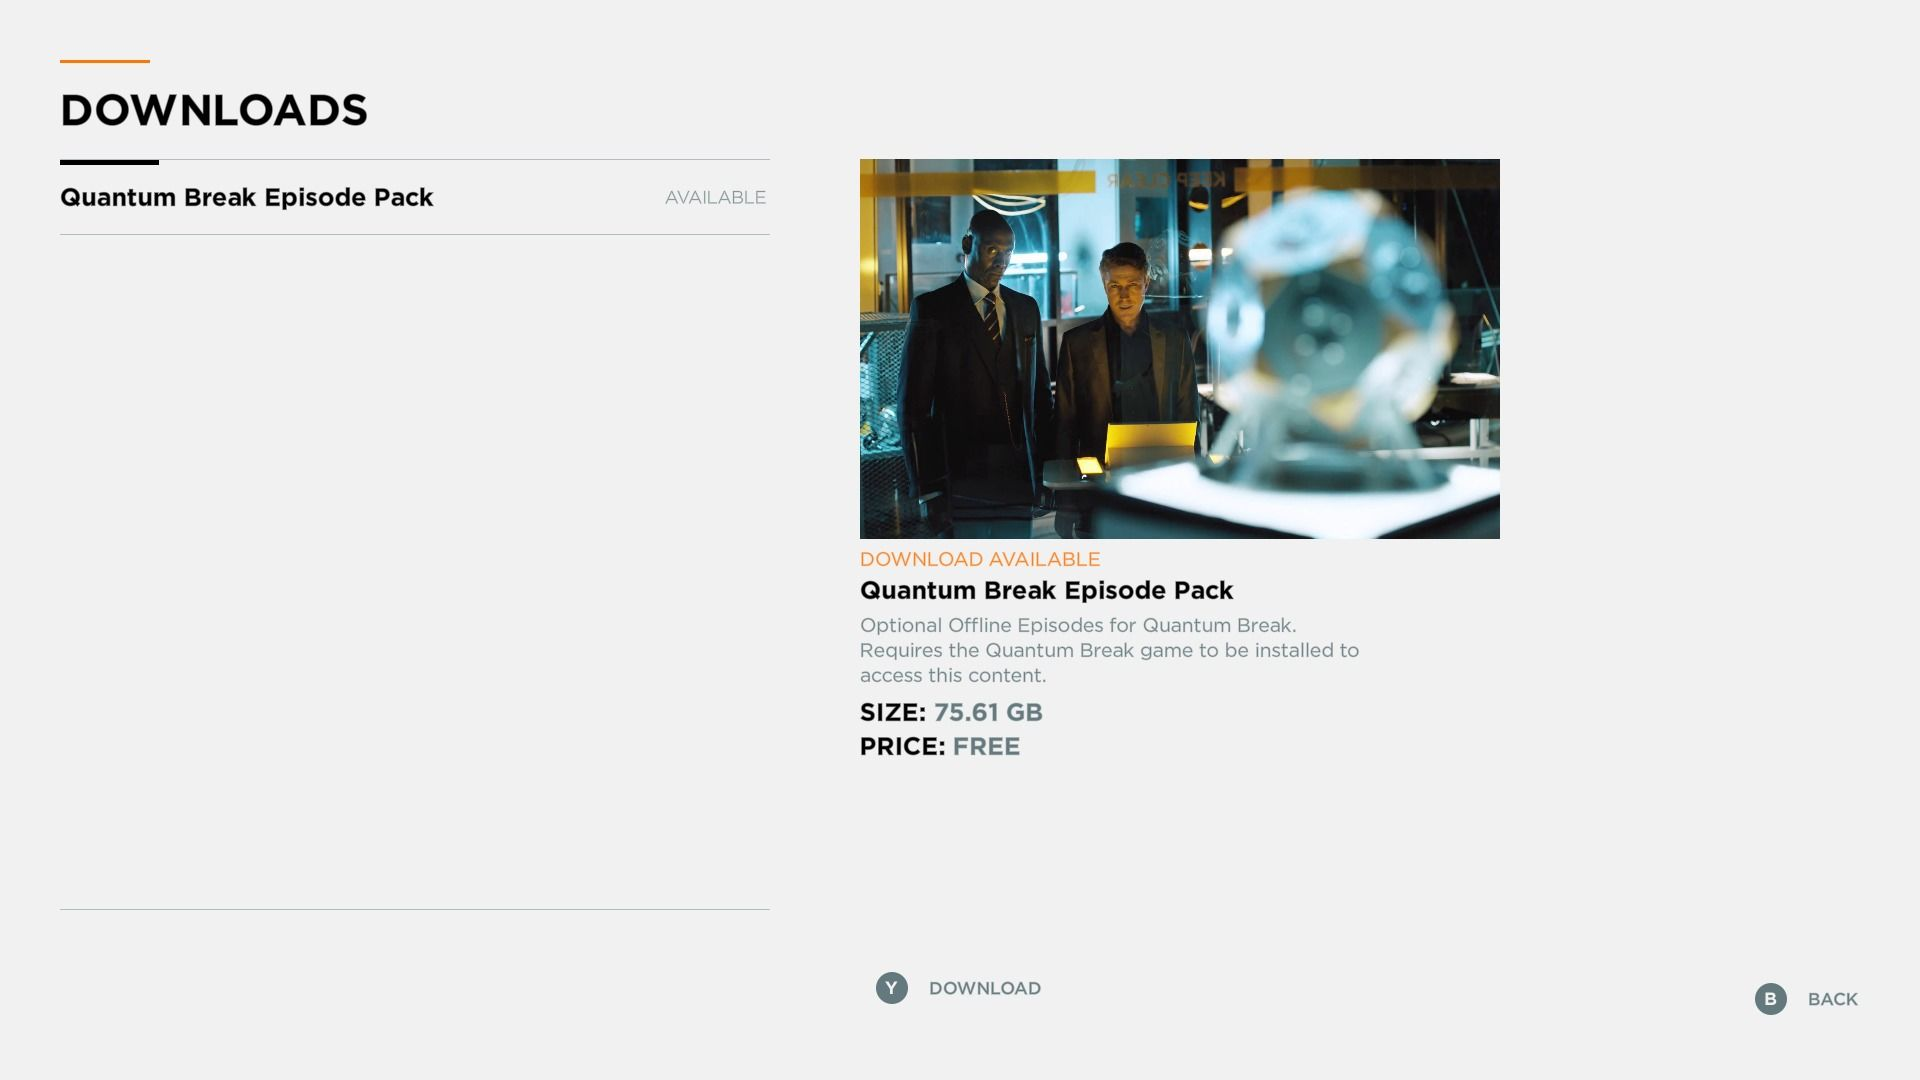 Quantum Break Screenshots for Xbox One - MobyGames